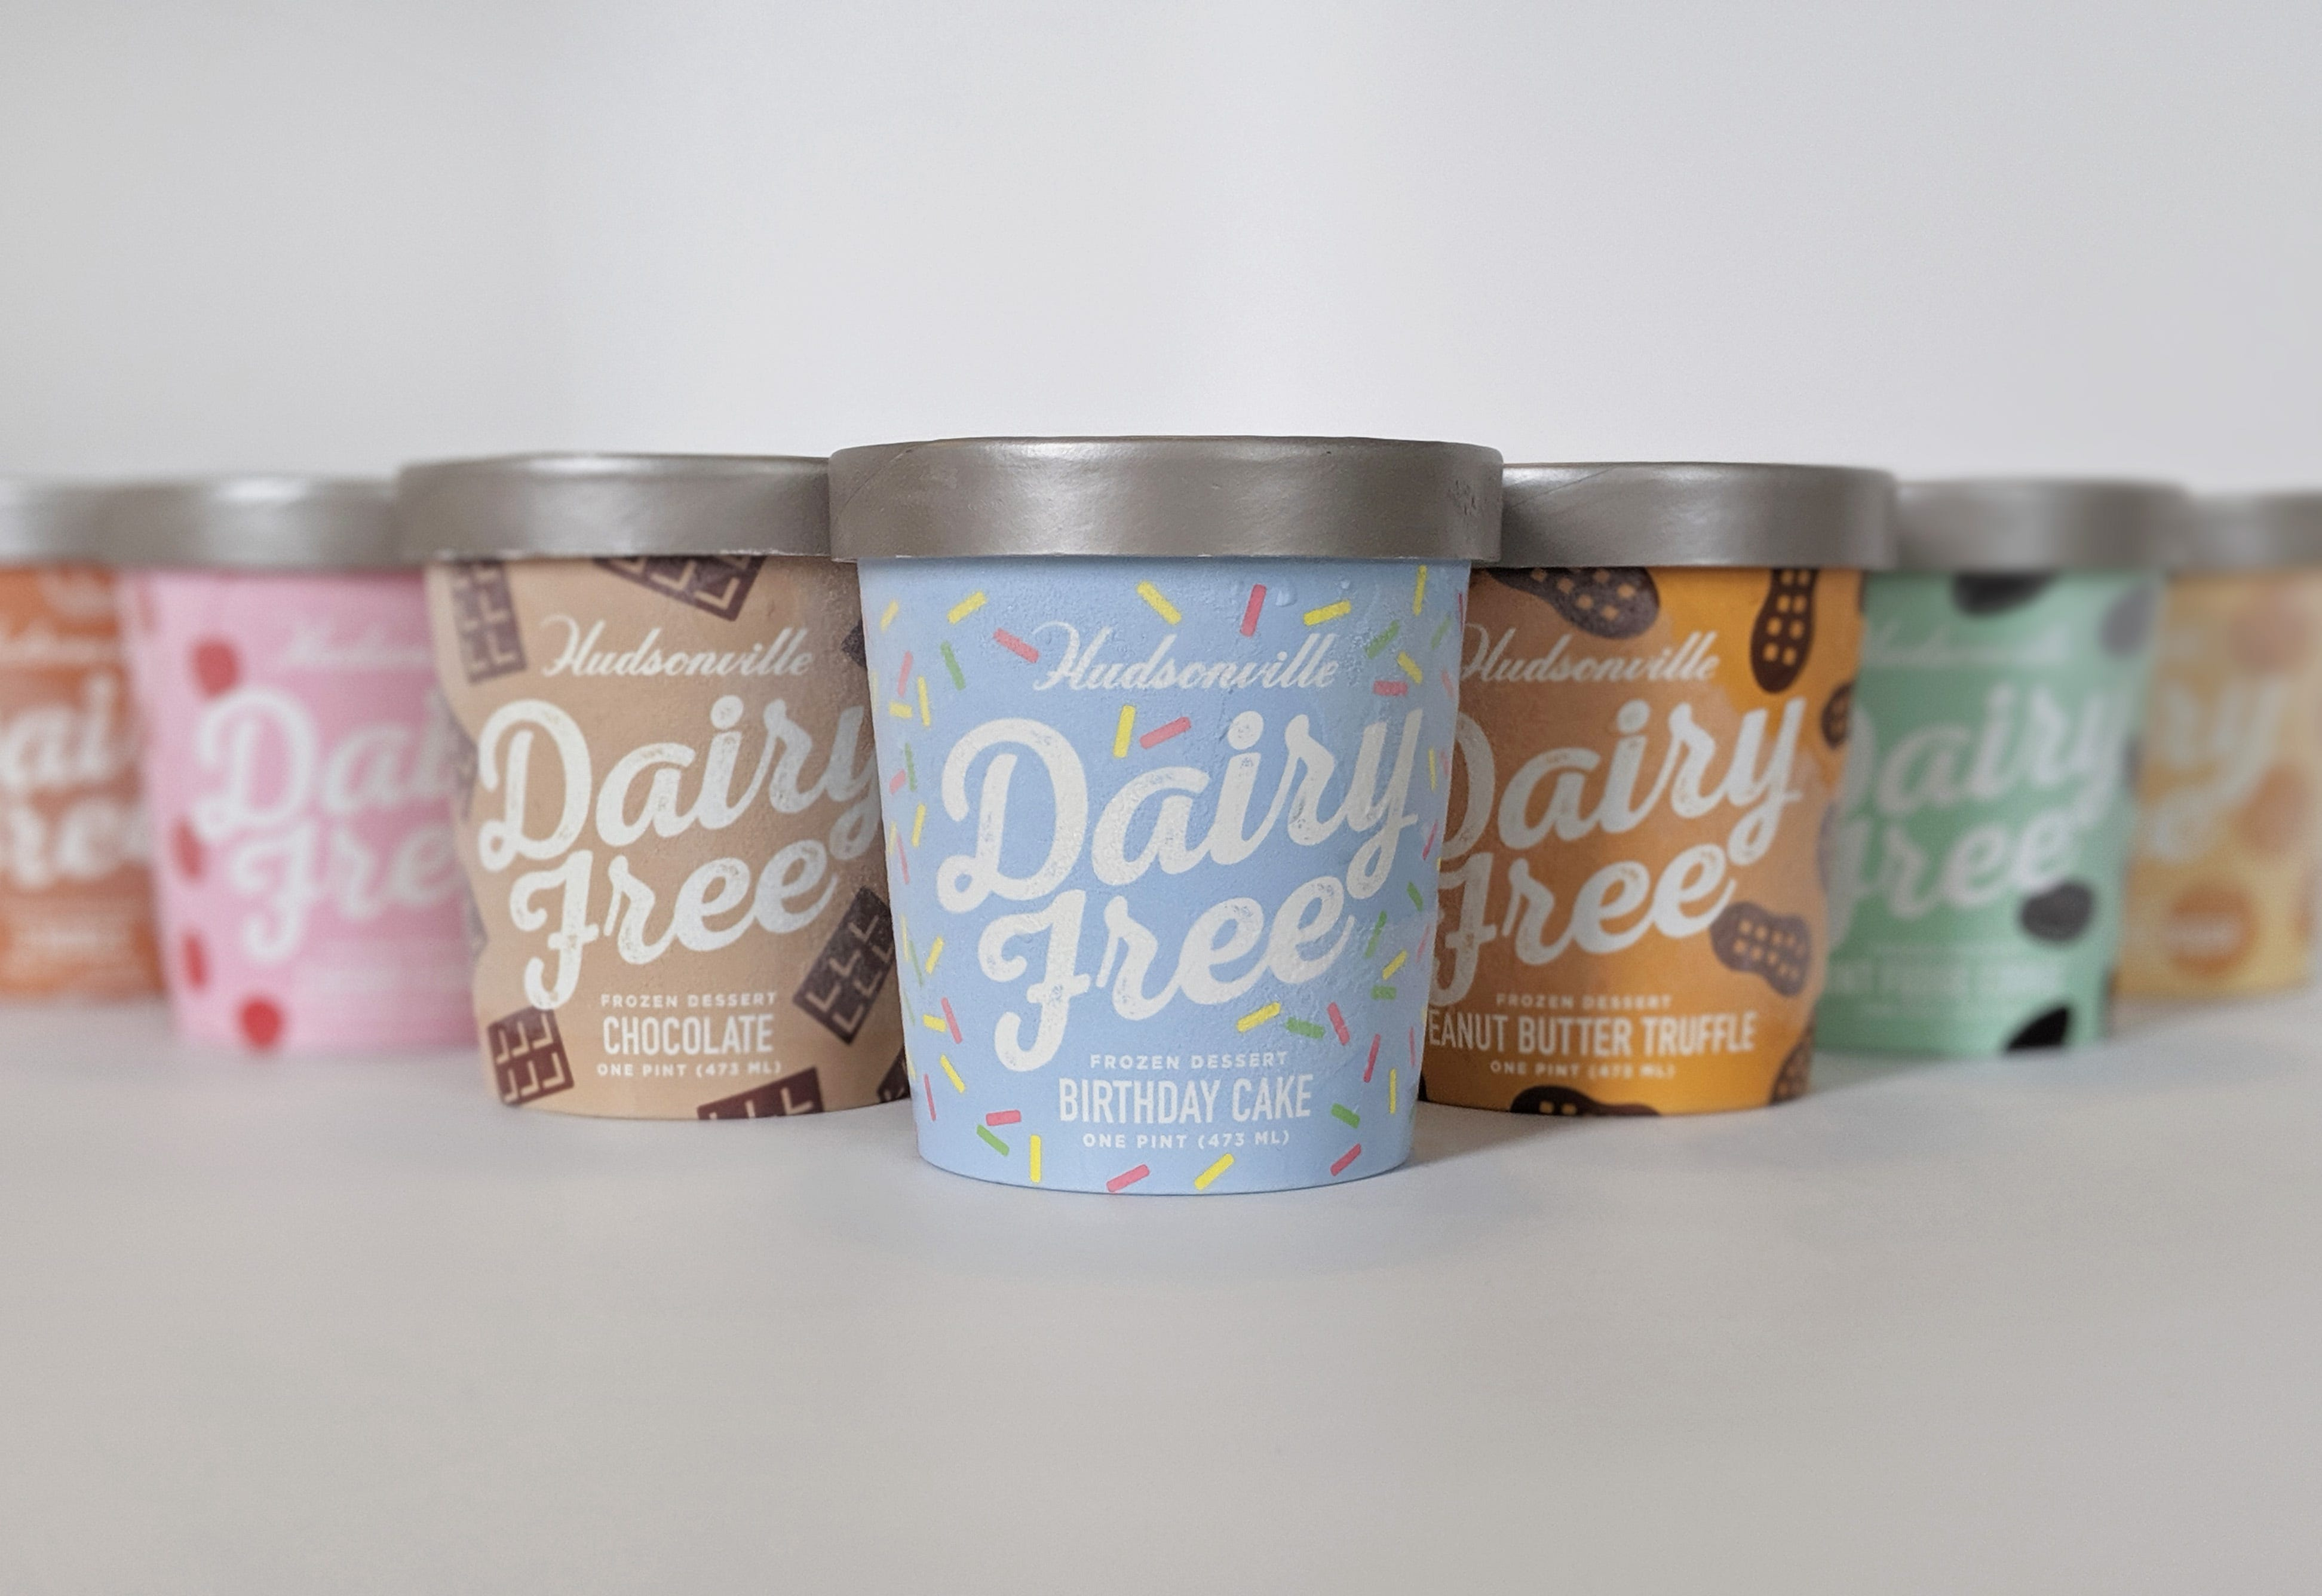 Hudsonville's vegan-profitable and dairy-free ice cream coming to Meijer stores